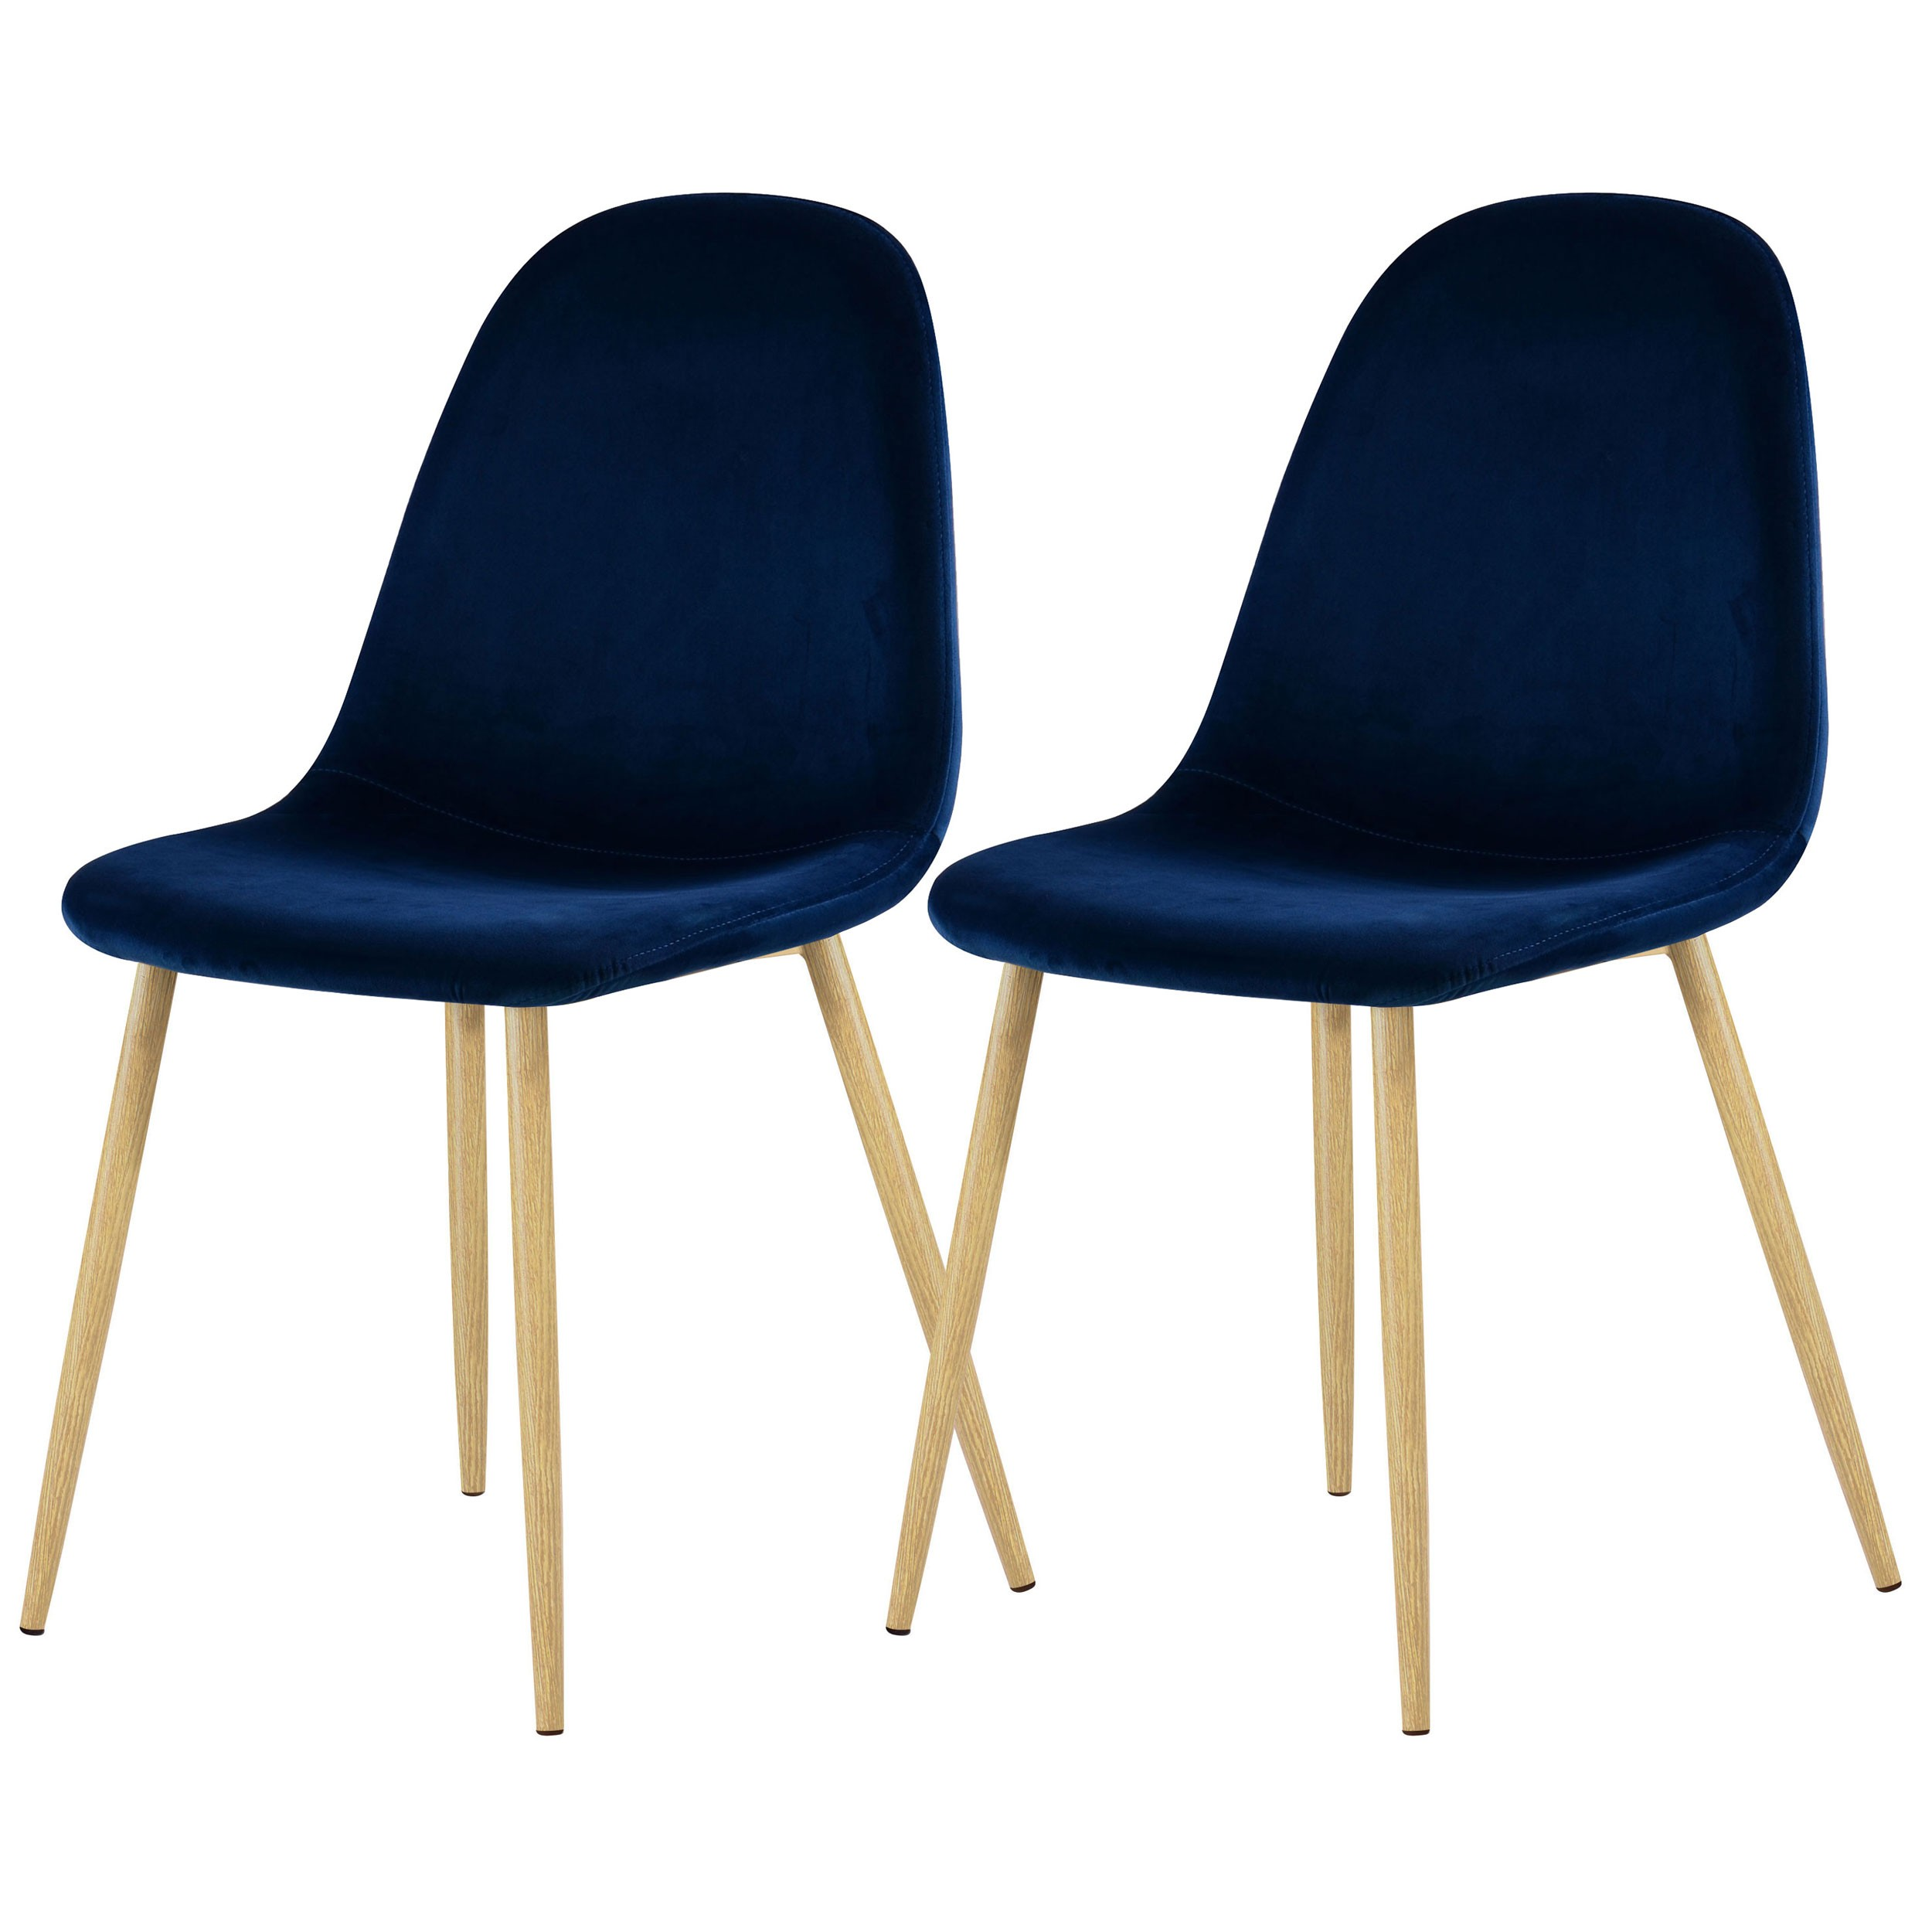 Lot Chaise Scandinave Chaise Fredrik En Velours Bleu Foncé Lot De 2